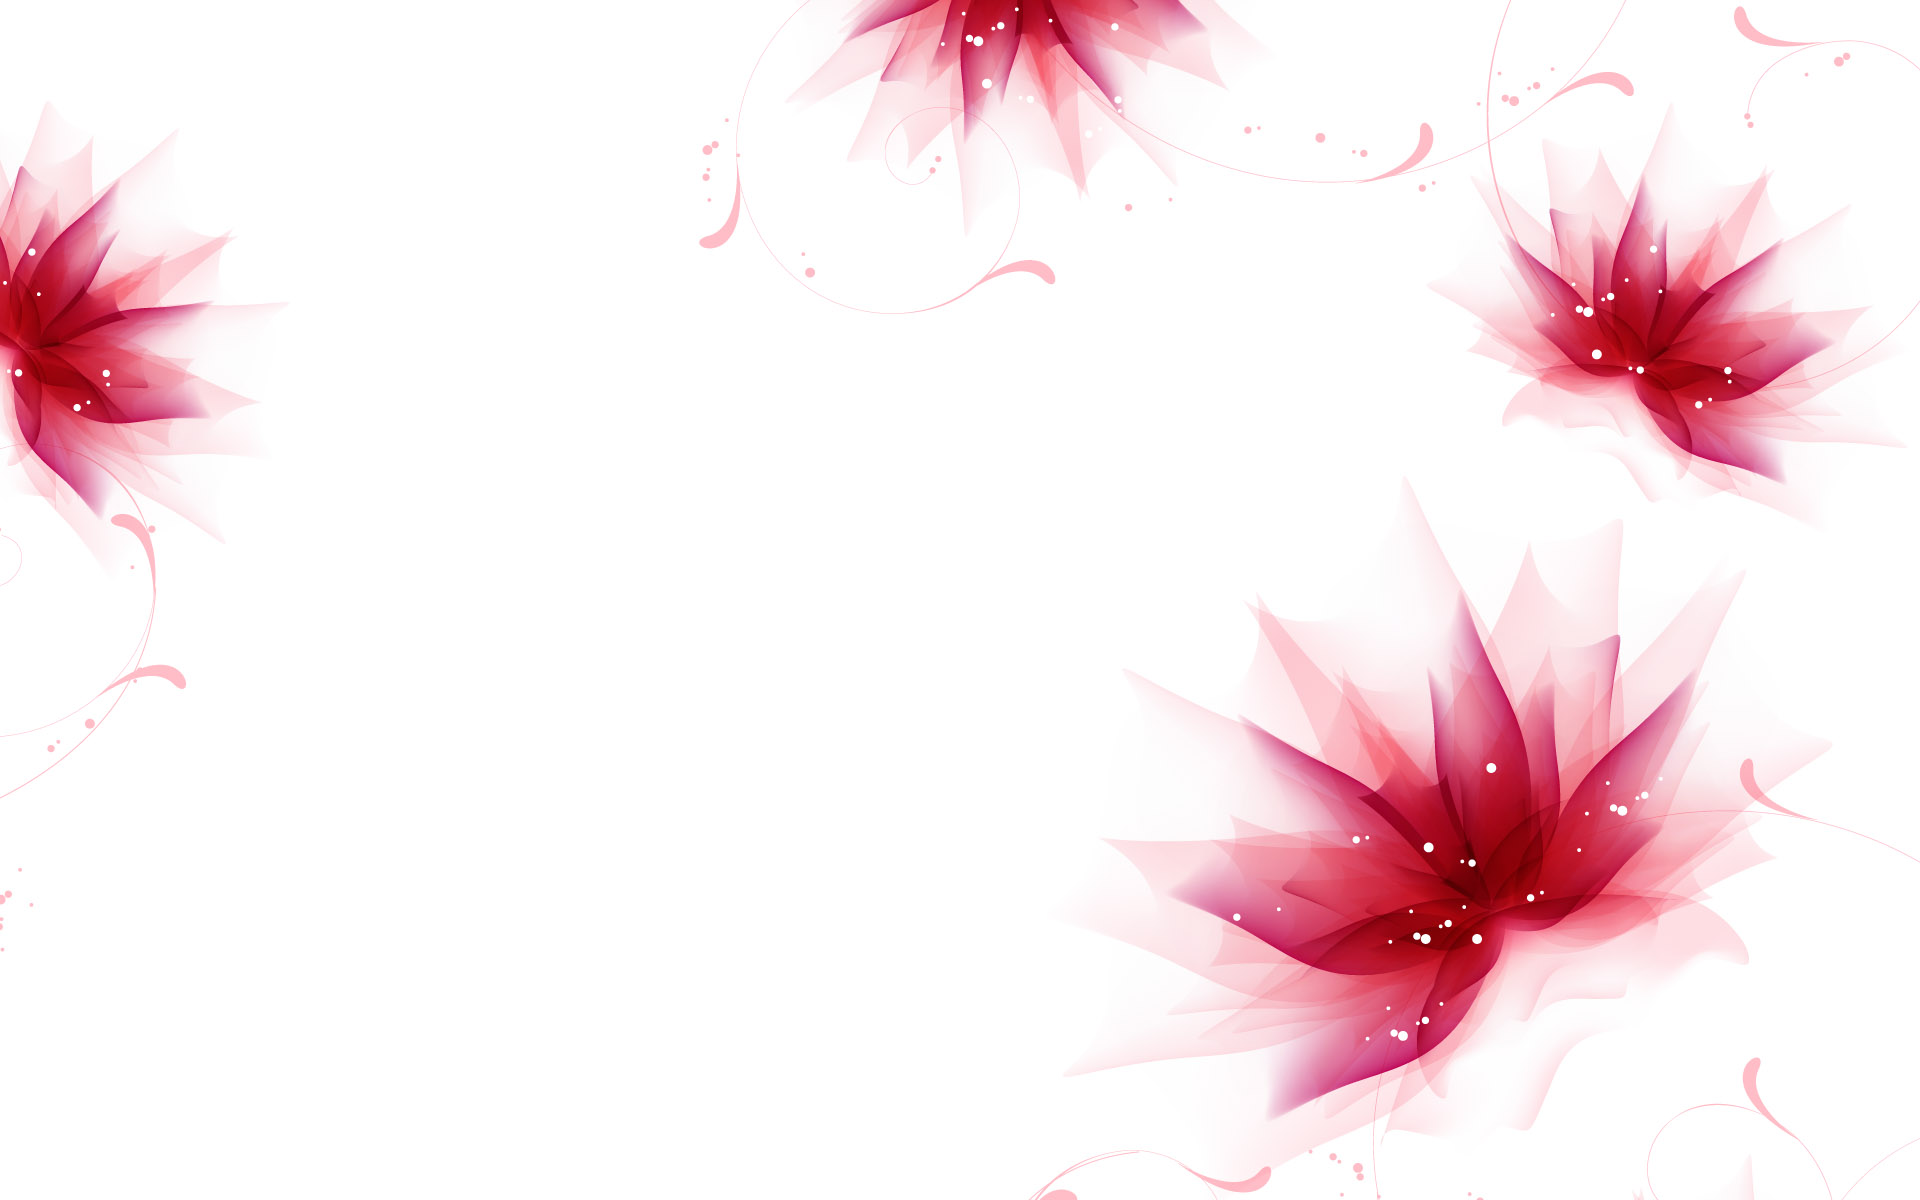 Floral Background 2992 Hd Wallpaper